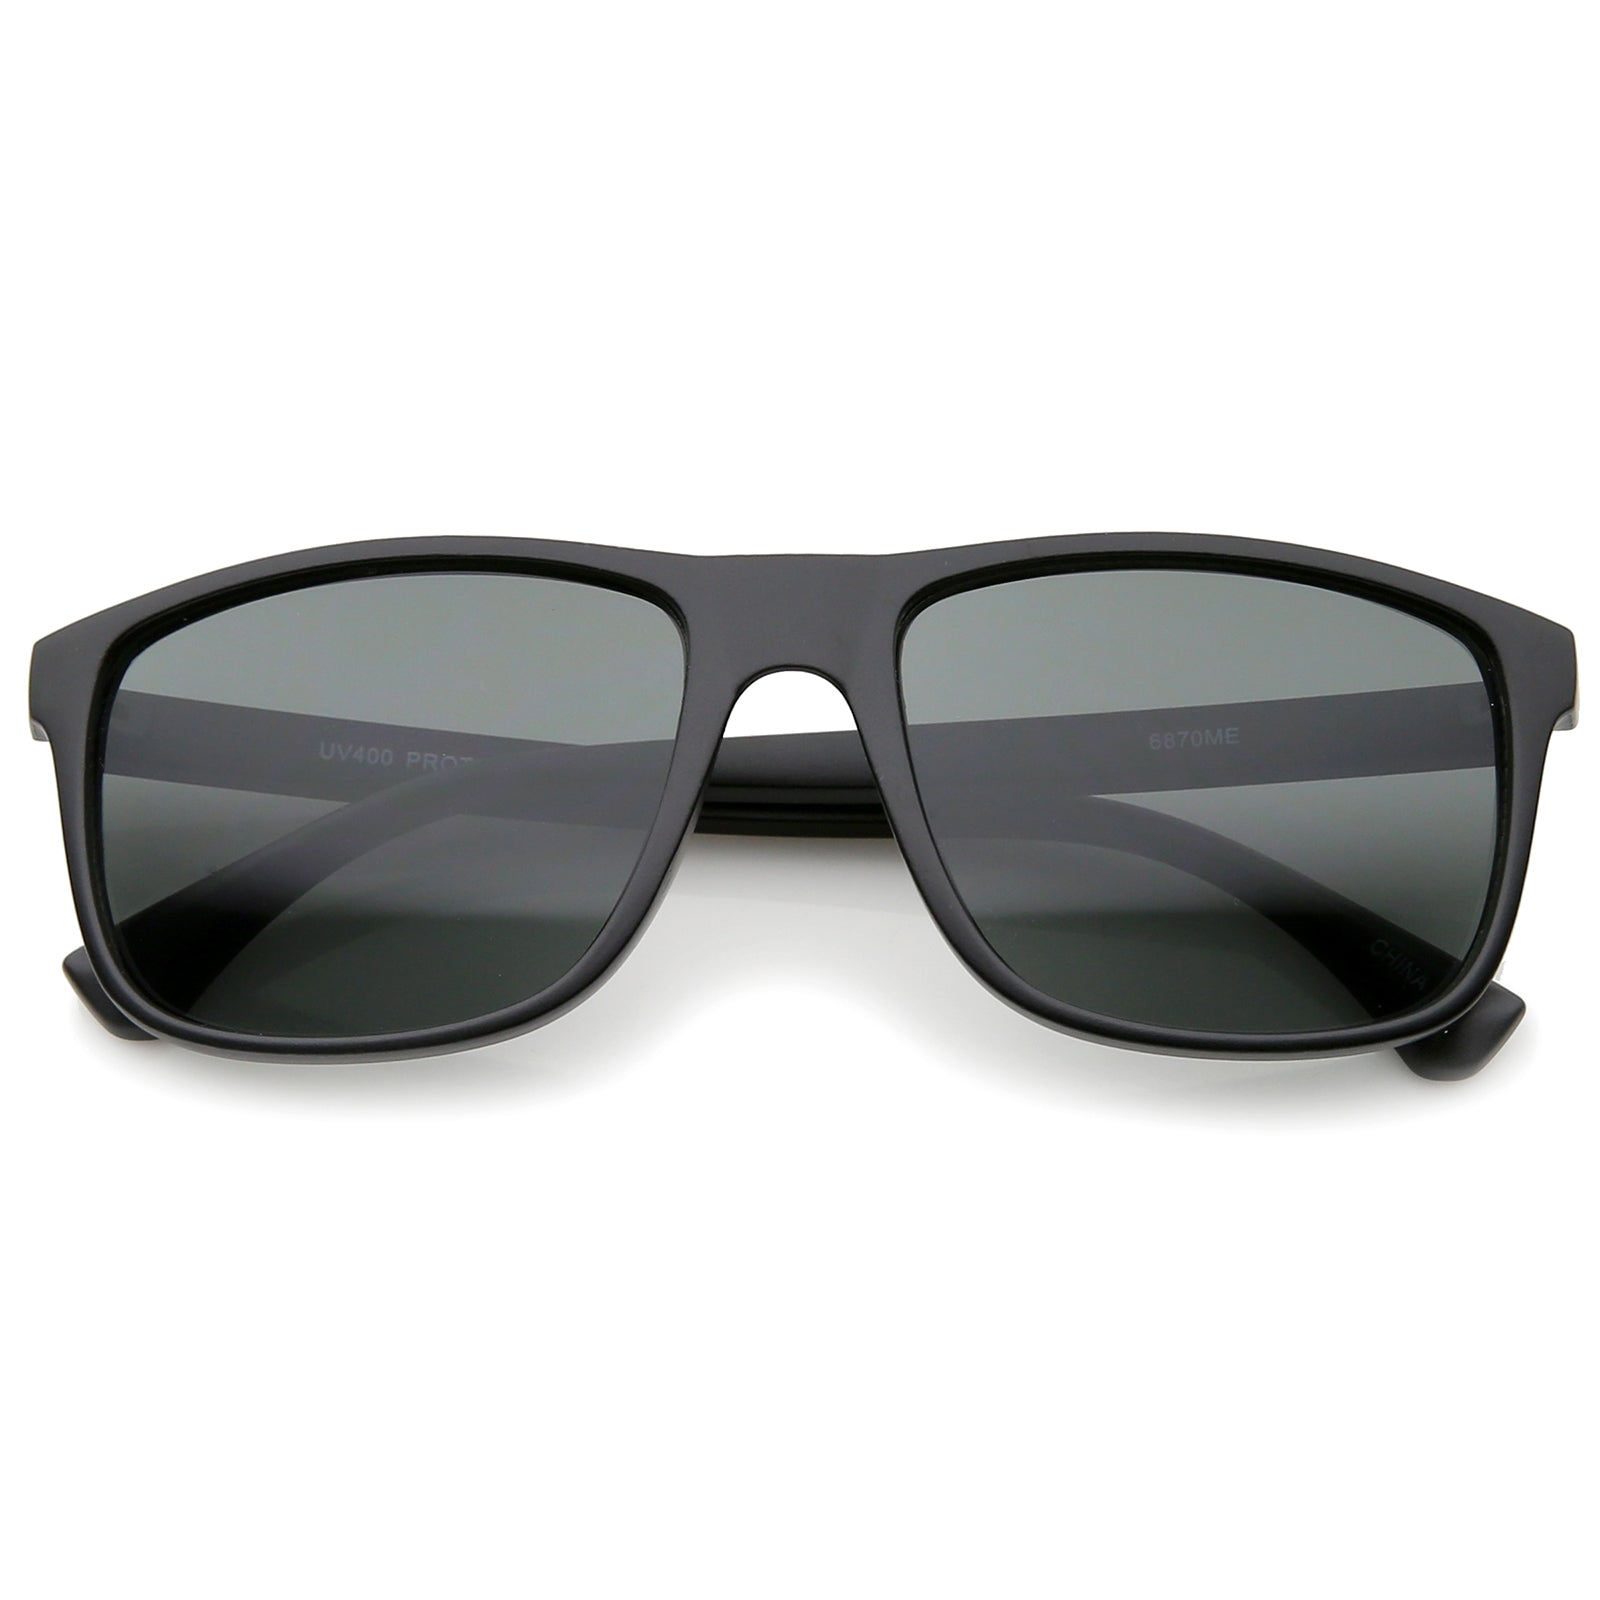 Modern Casual Lifestyle Flat Top Rectangle Lens Horn Rimmed Sunglasses 56mm - sunglass.la - 6